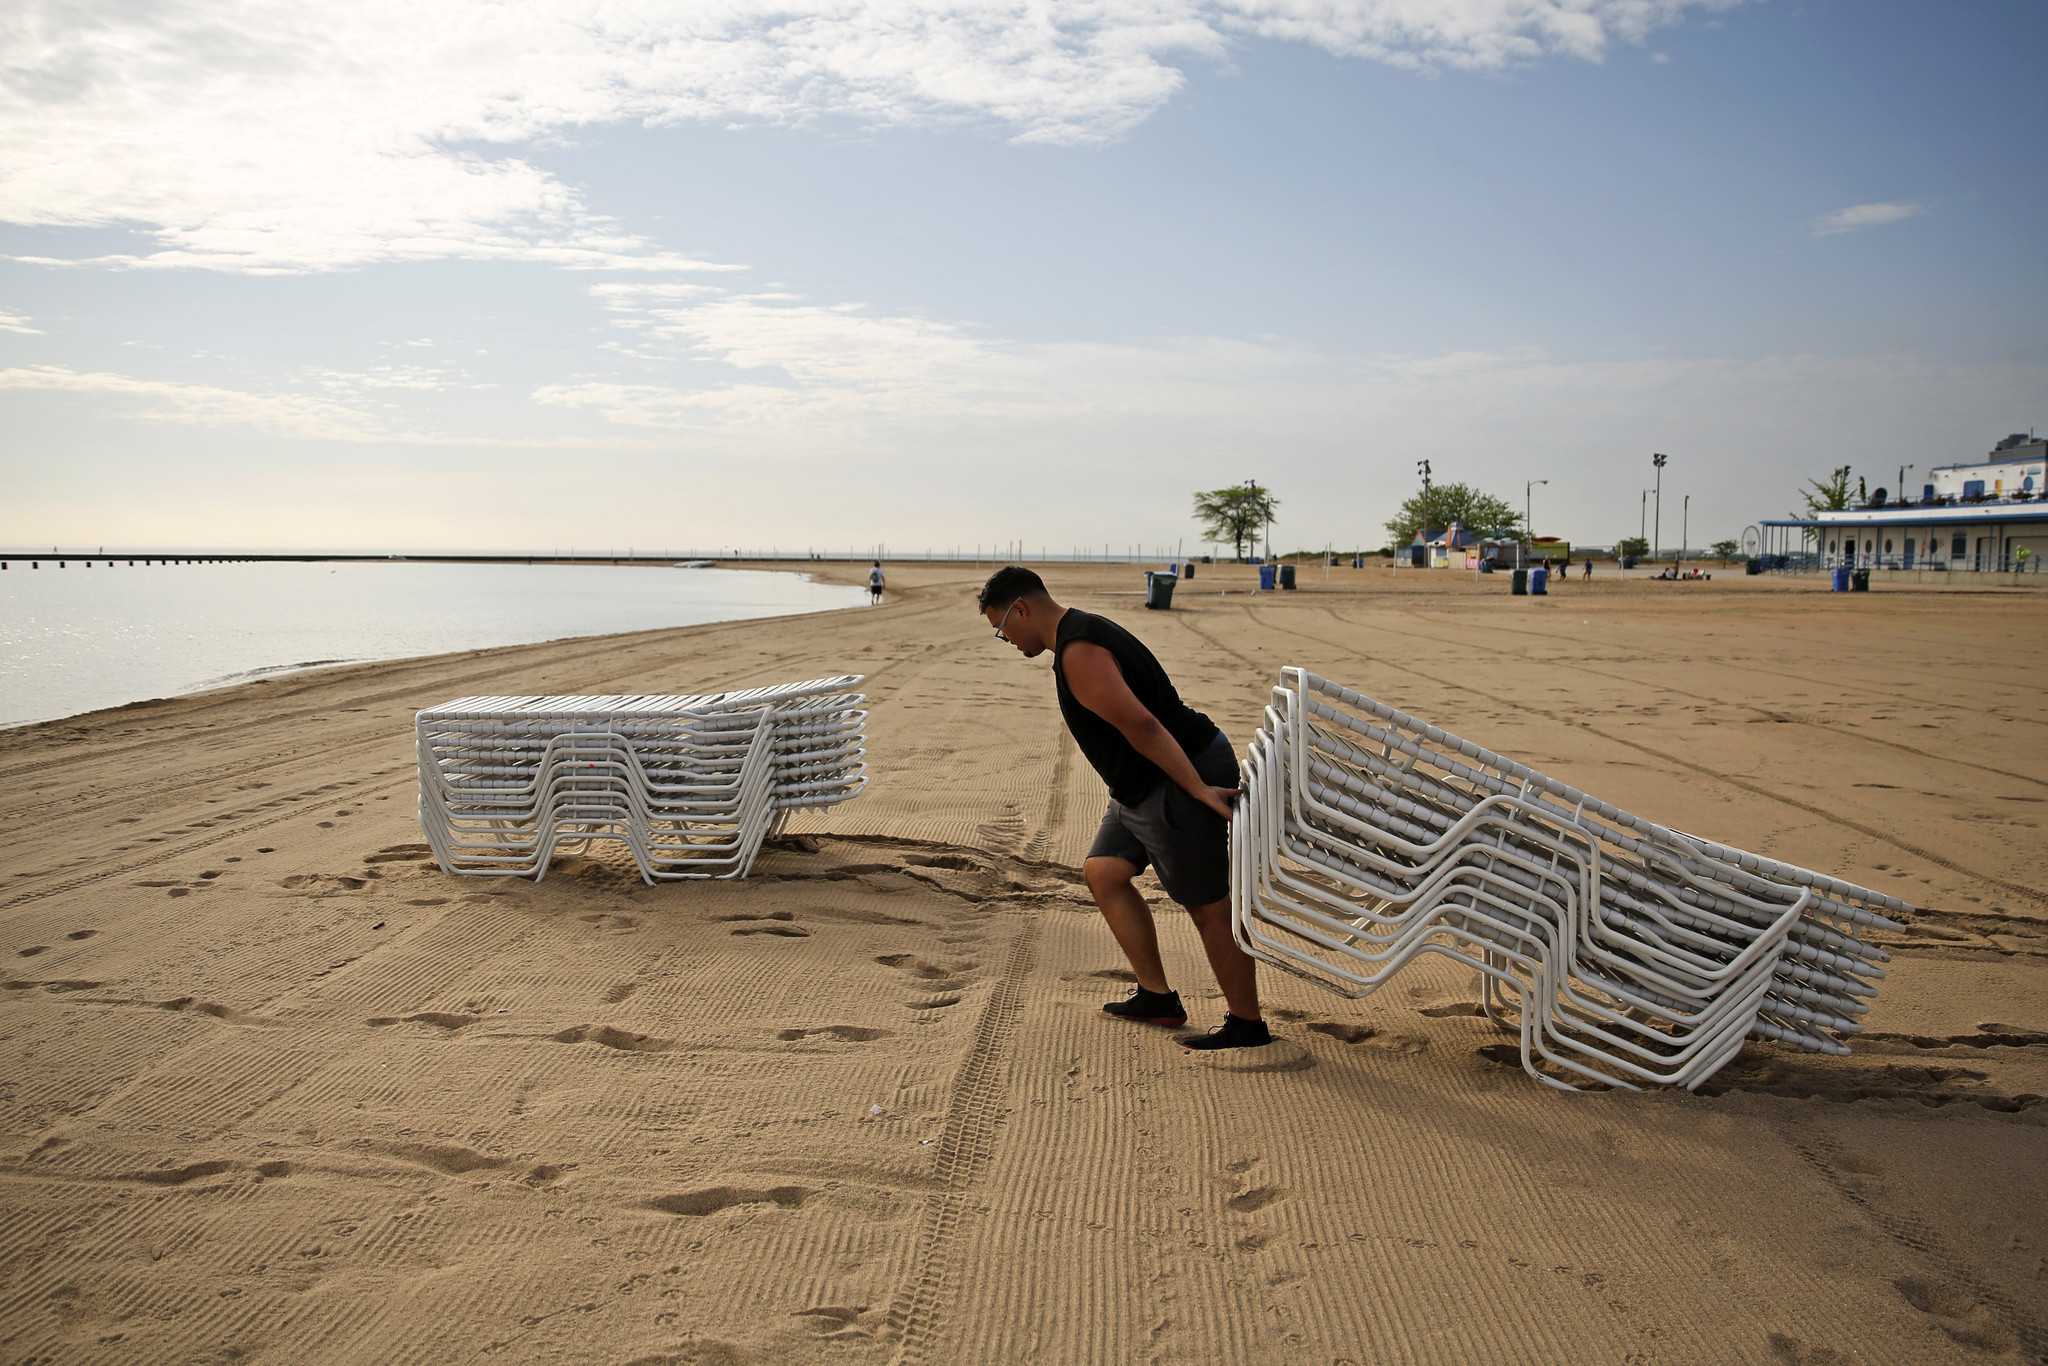 Chicago beaches open for the summer - Chicago Tribune